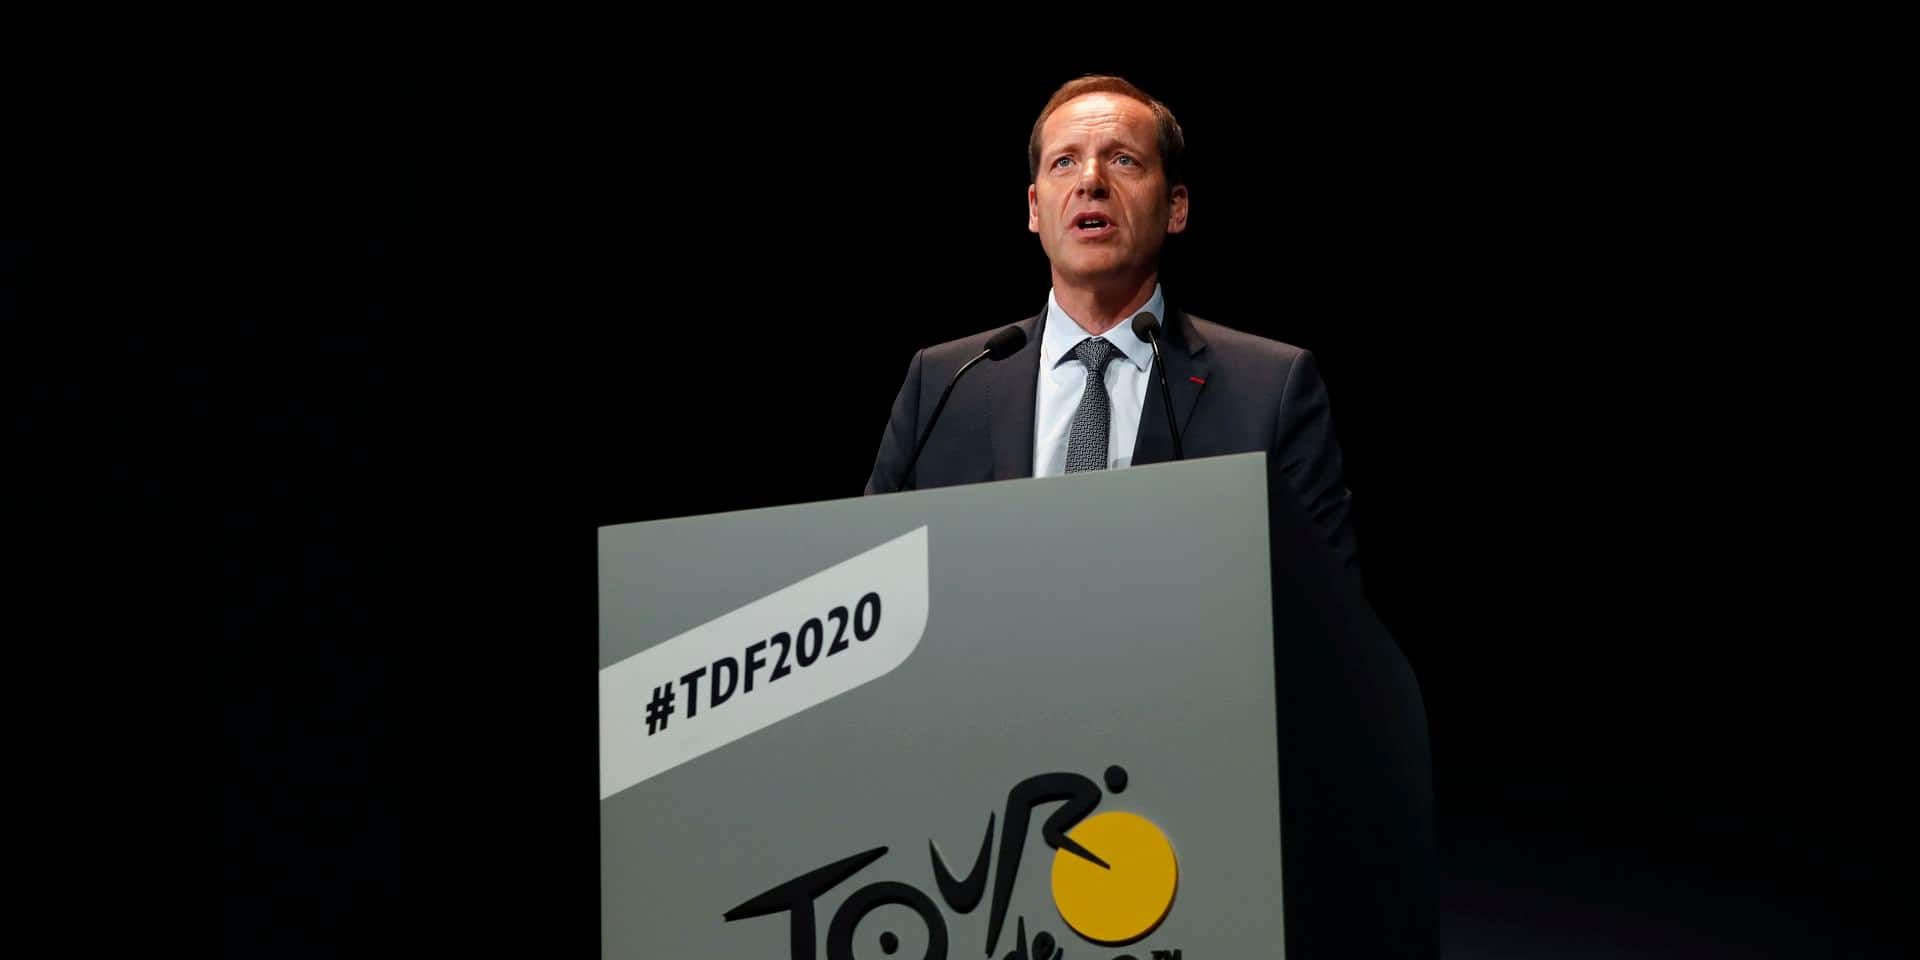 Tour de France 2020: La part belle à la montagne